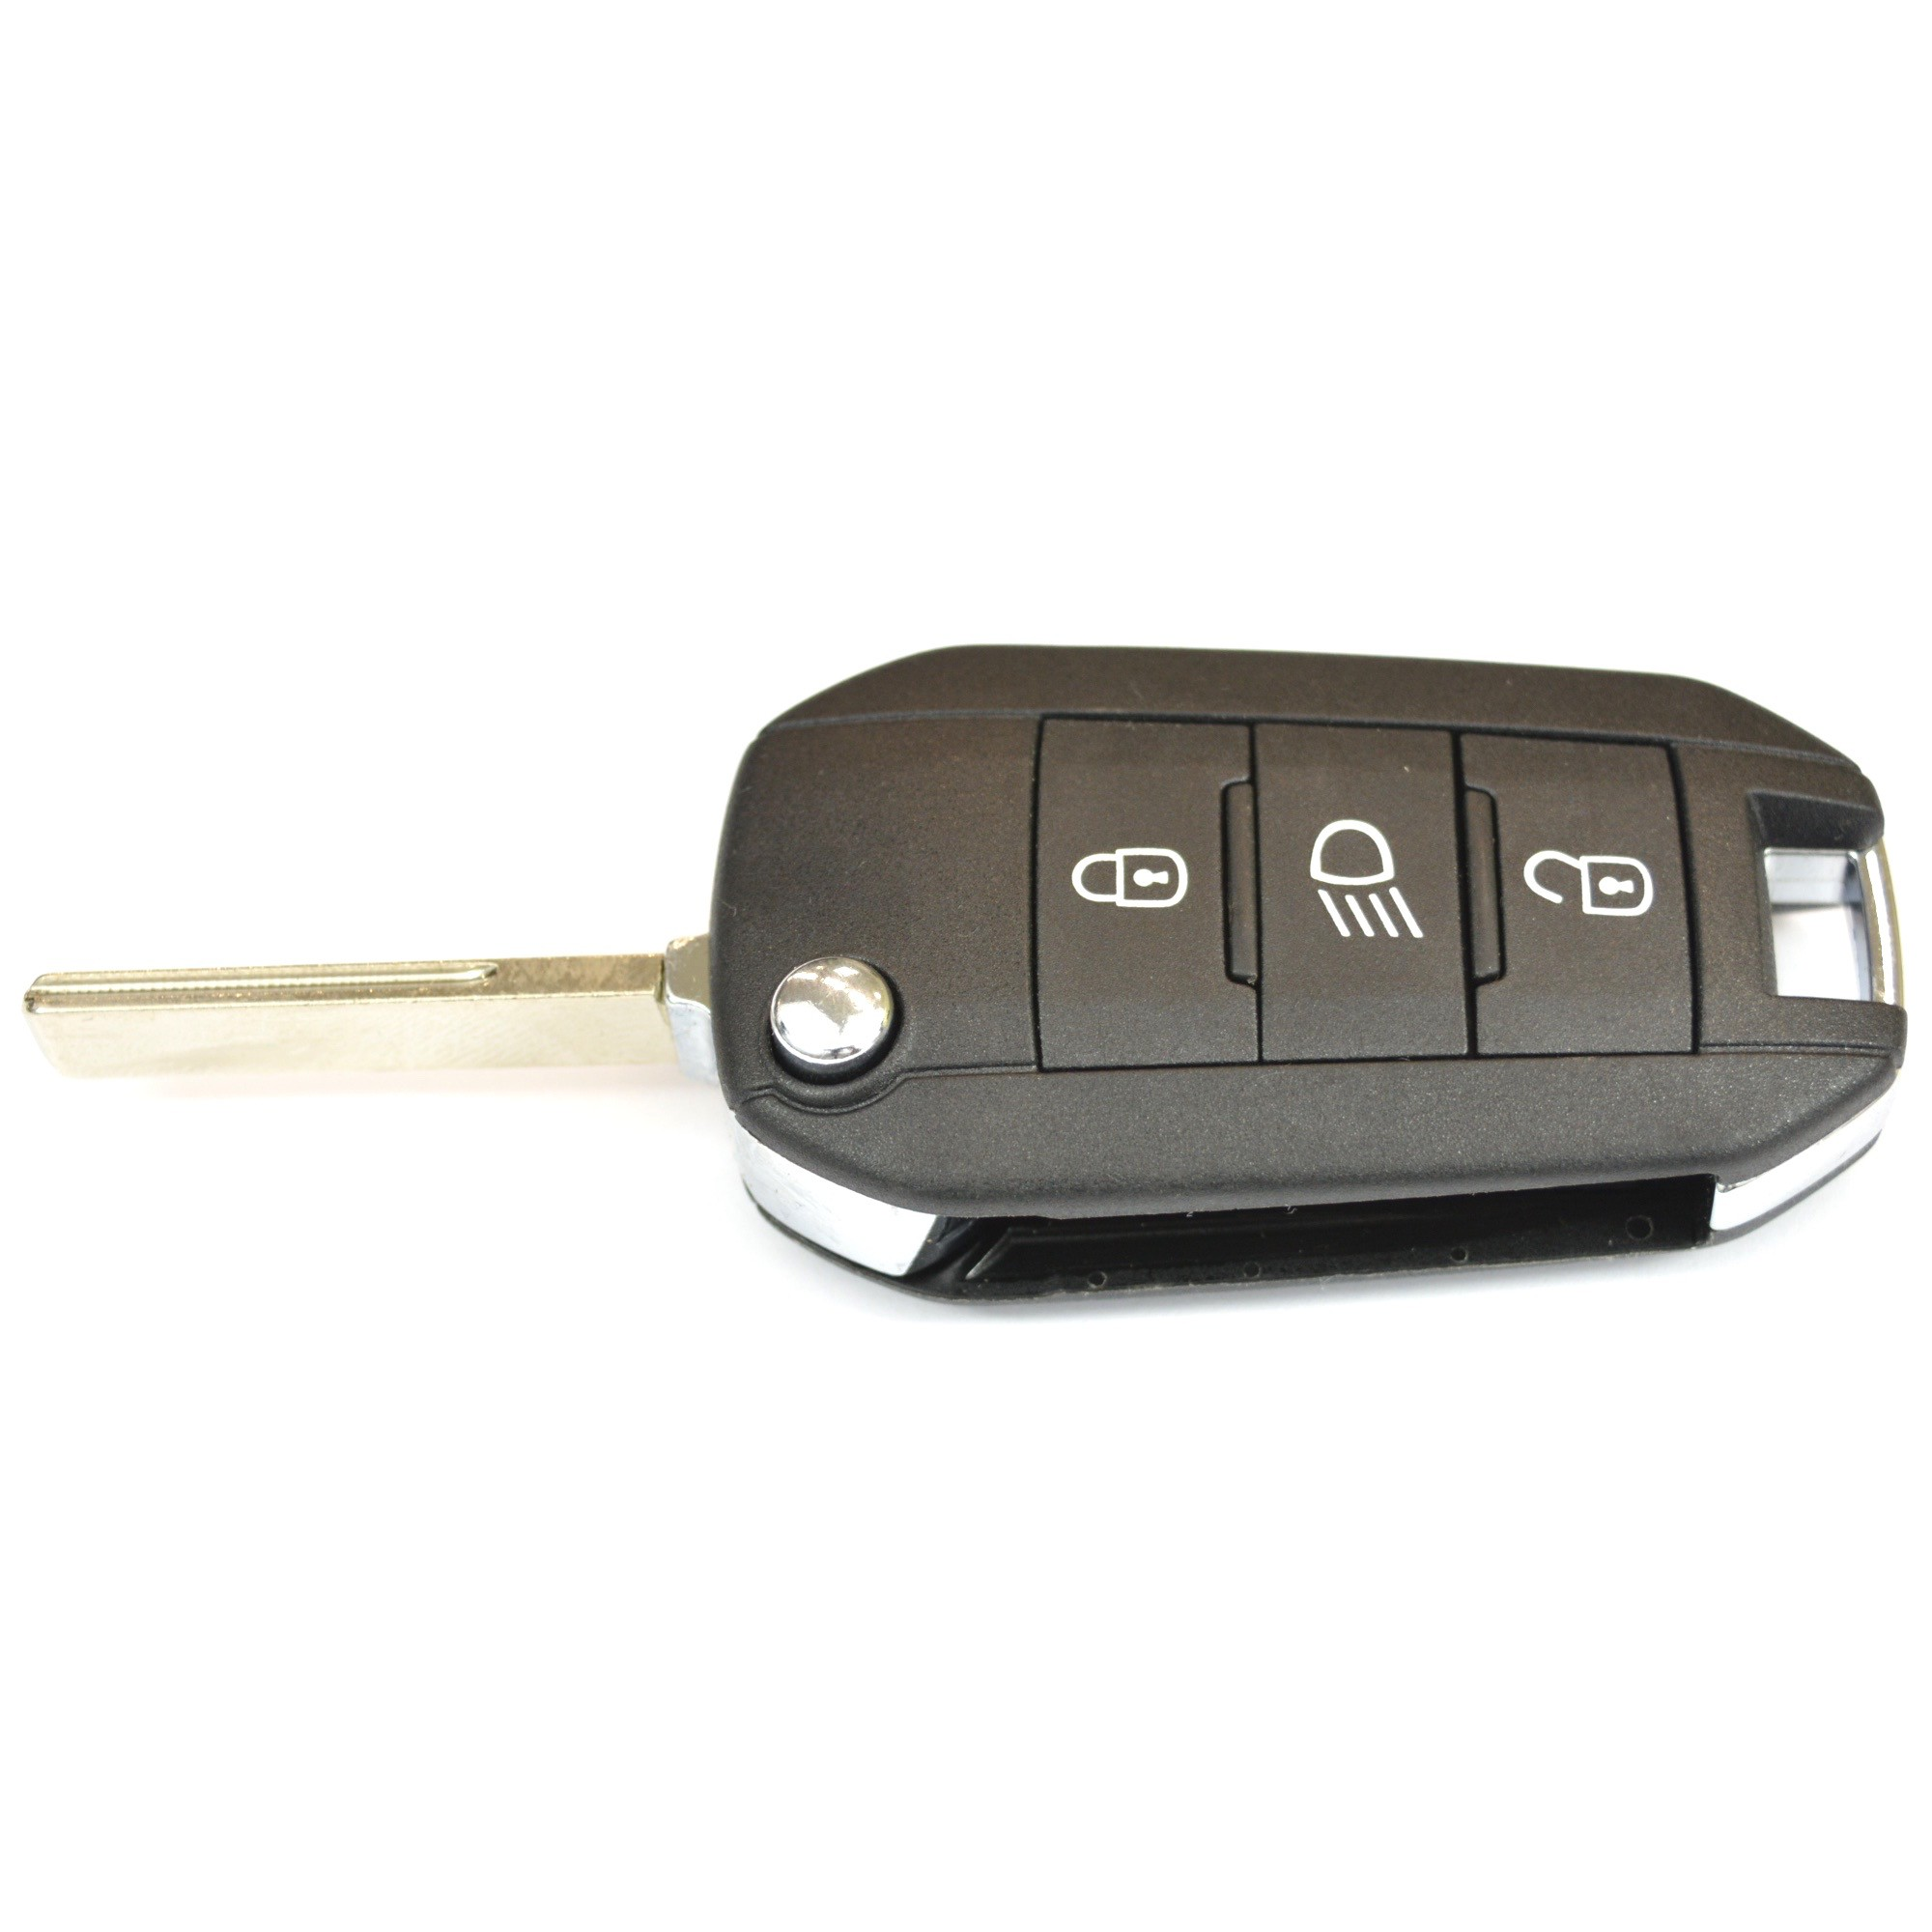 peugeot 3 button remote key fob with chip - evolution gt